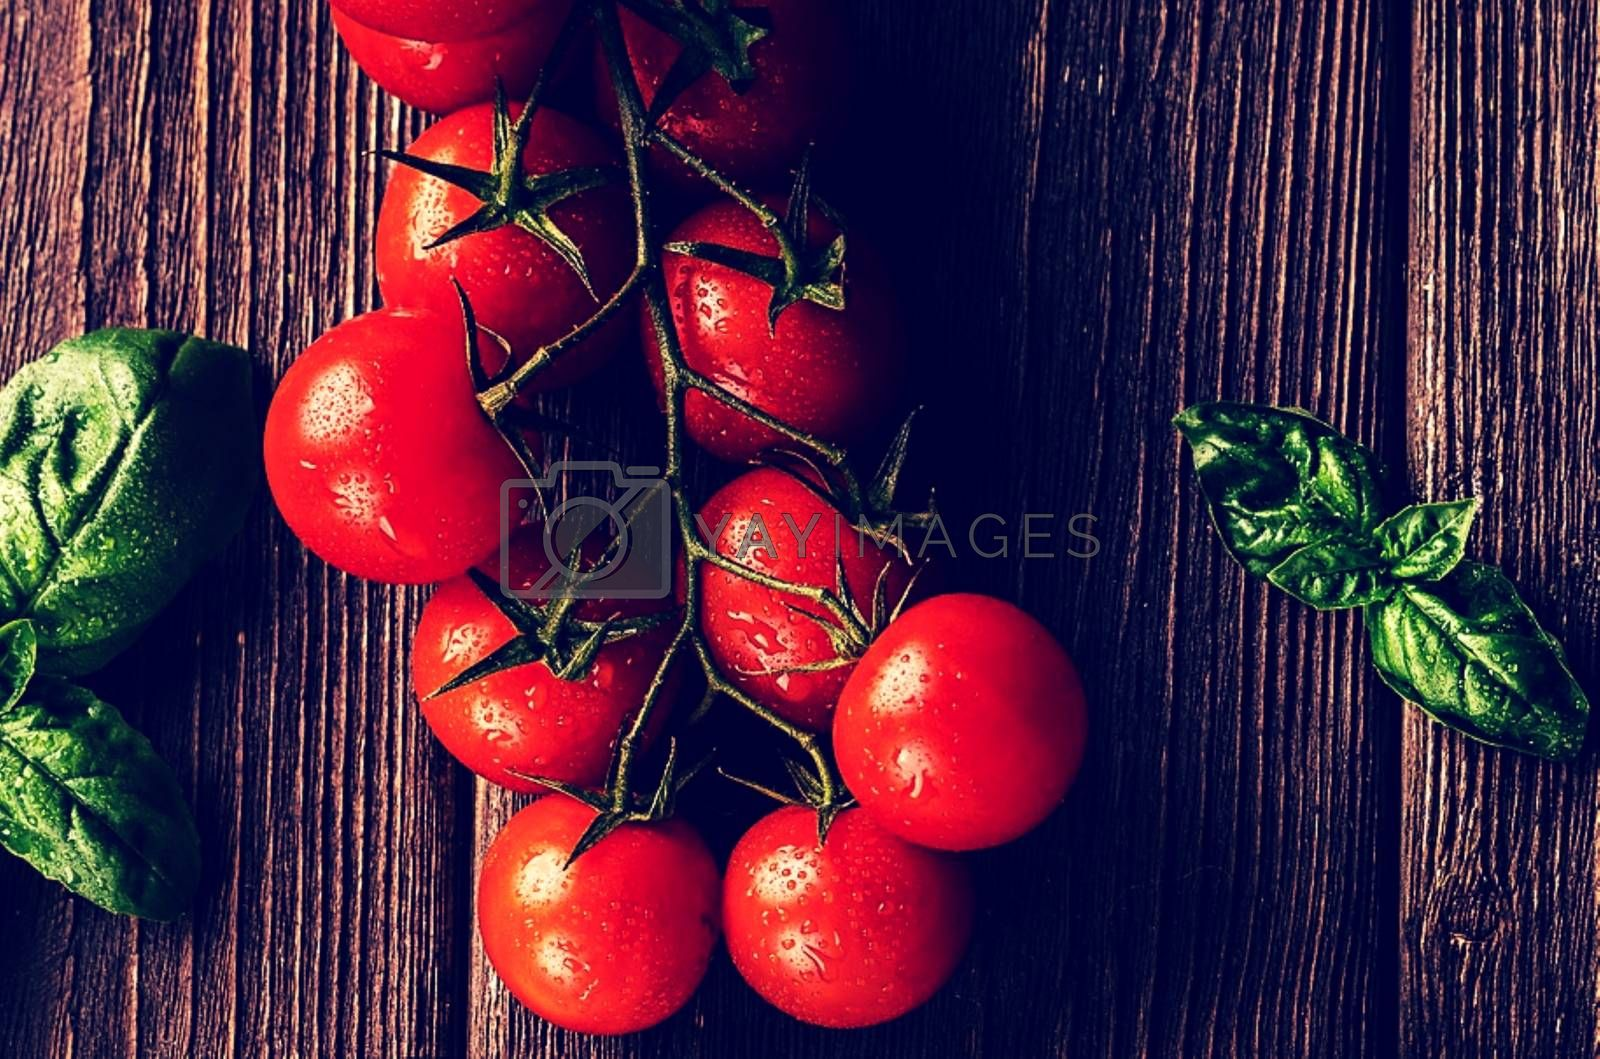 Royalty free image of Some tomatoes sitting on top of a wooden table by balage941